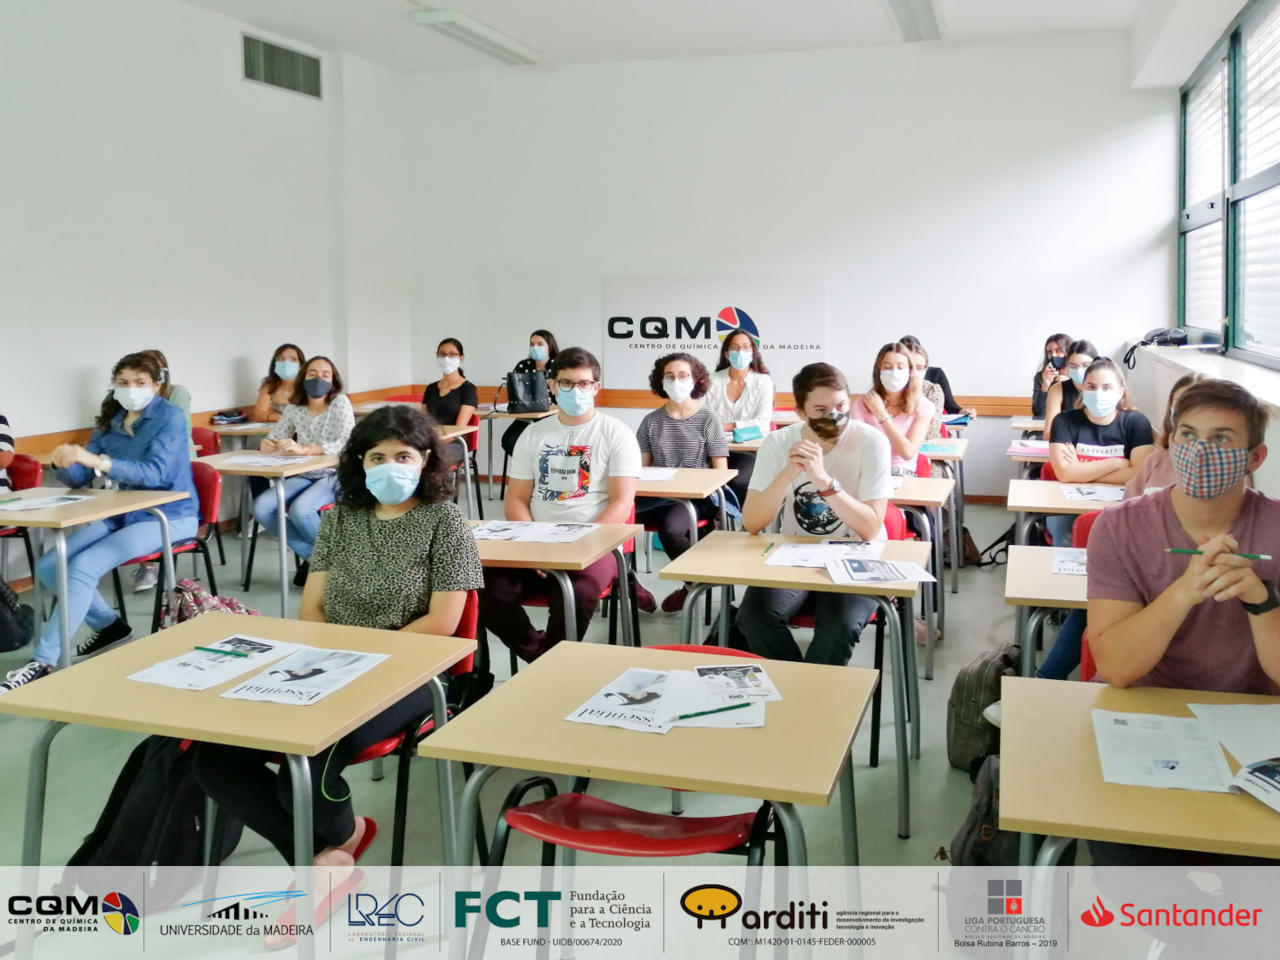 Madeira Chemistry Research Centre (CQM *) welcomes the students of 1st cycle in Biochemistry